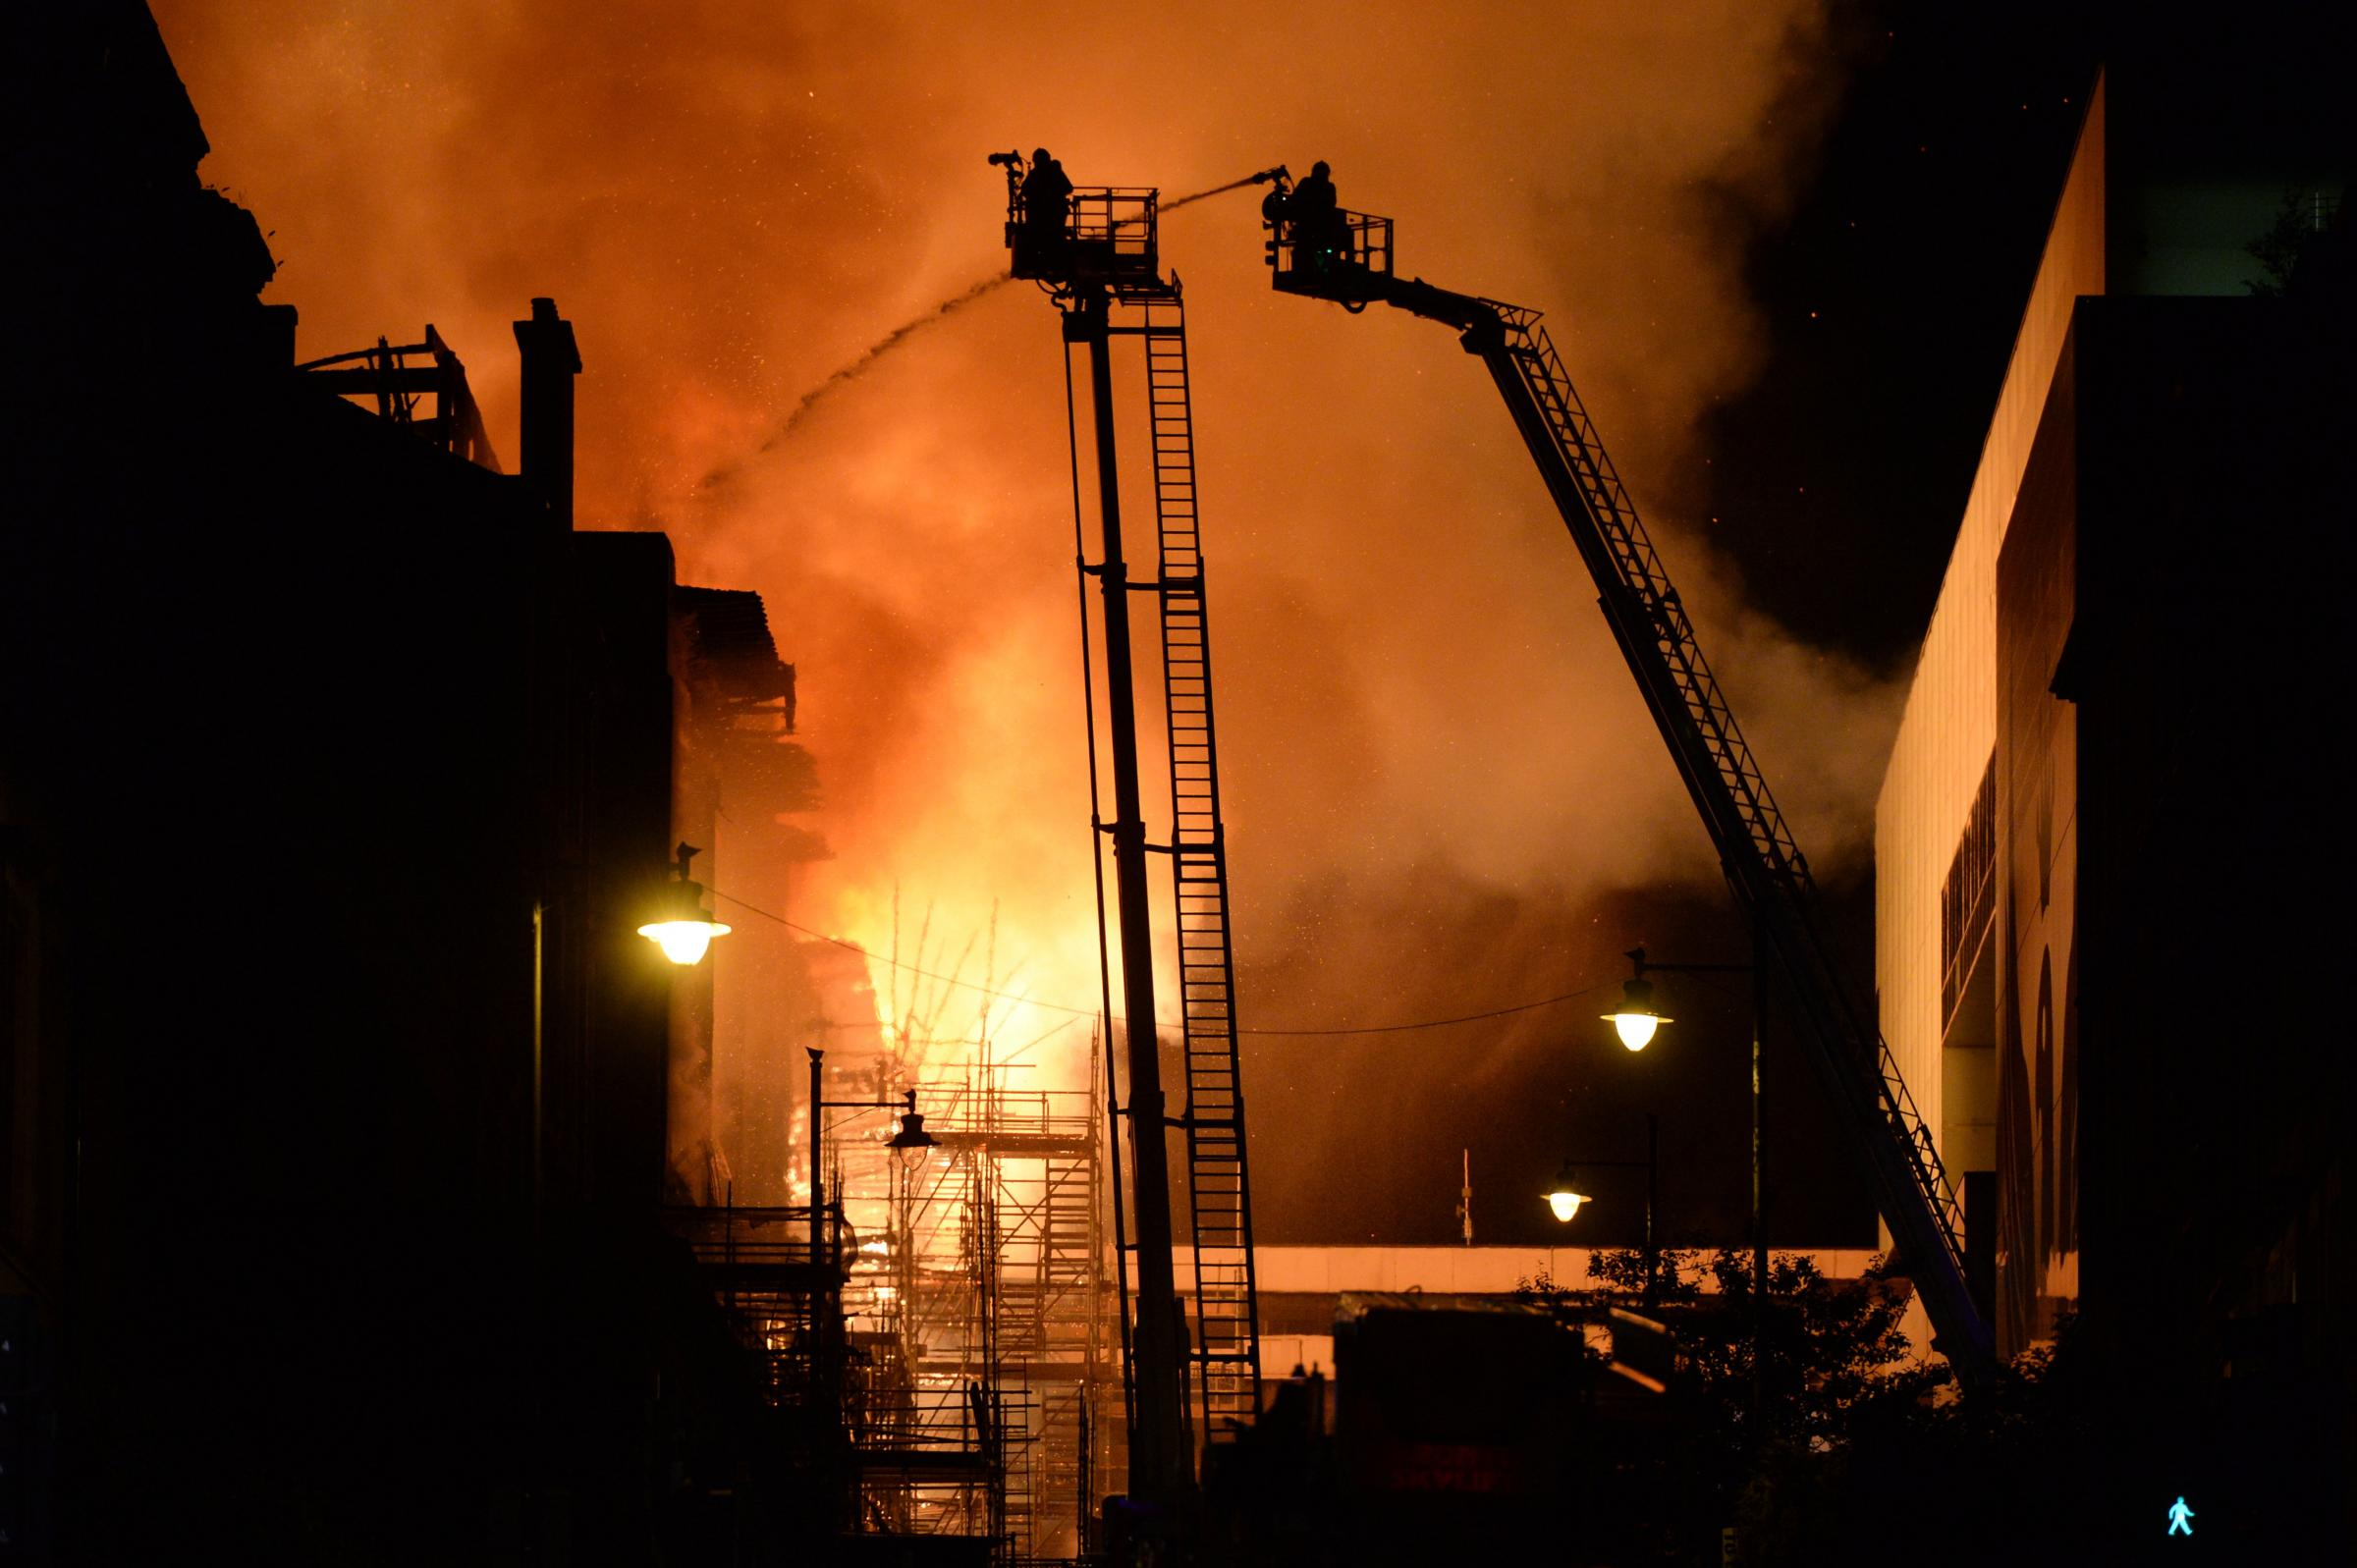 Glasgow School of Art fire: MSPs call for public inquiry into blaze